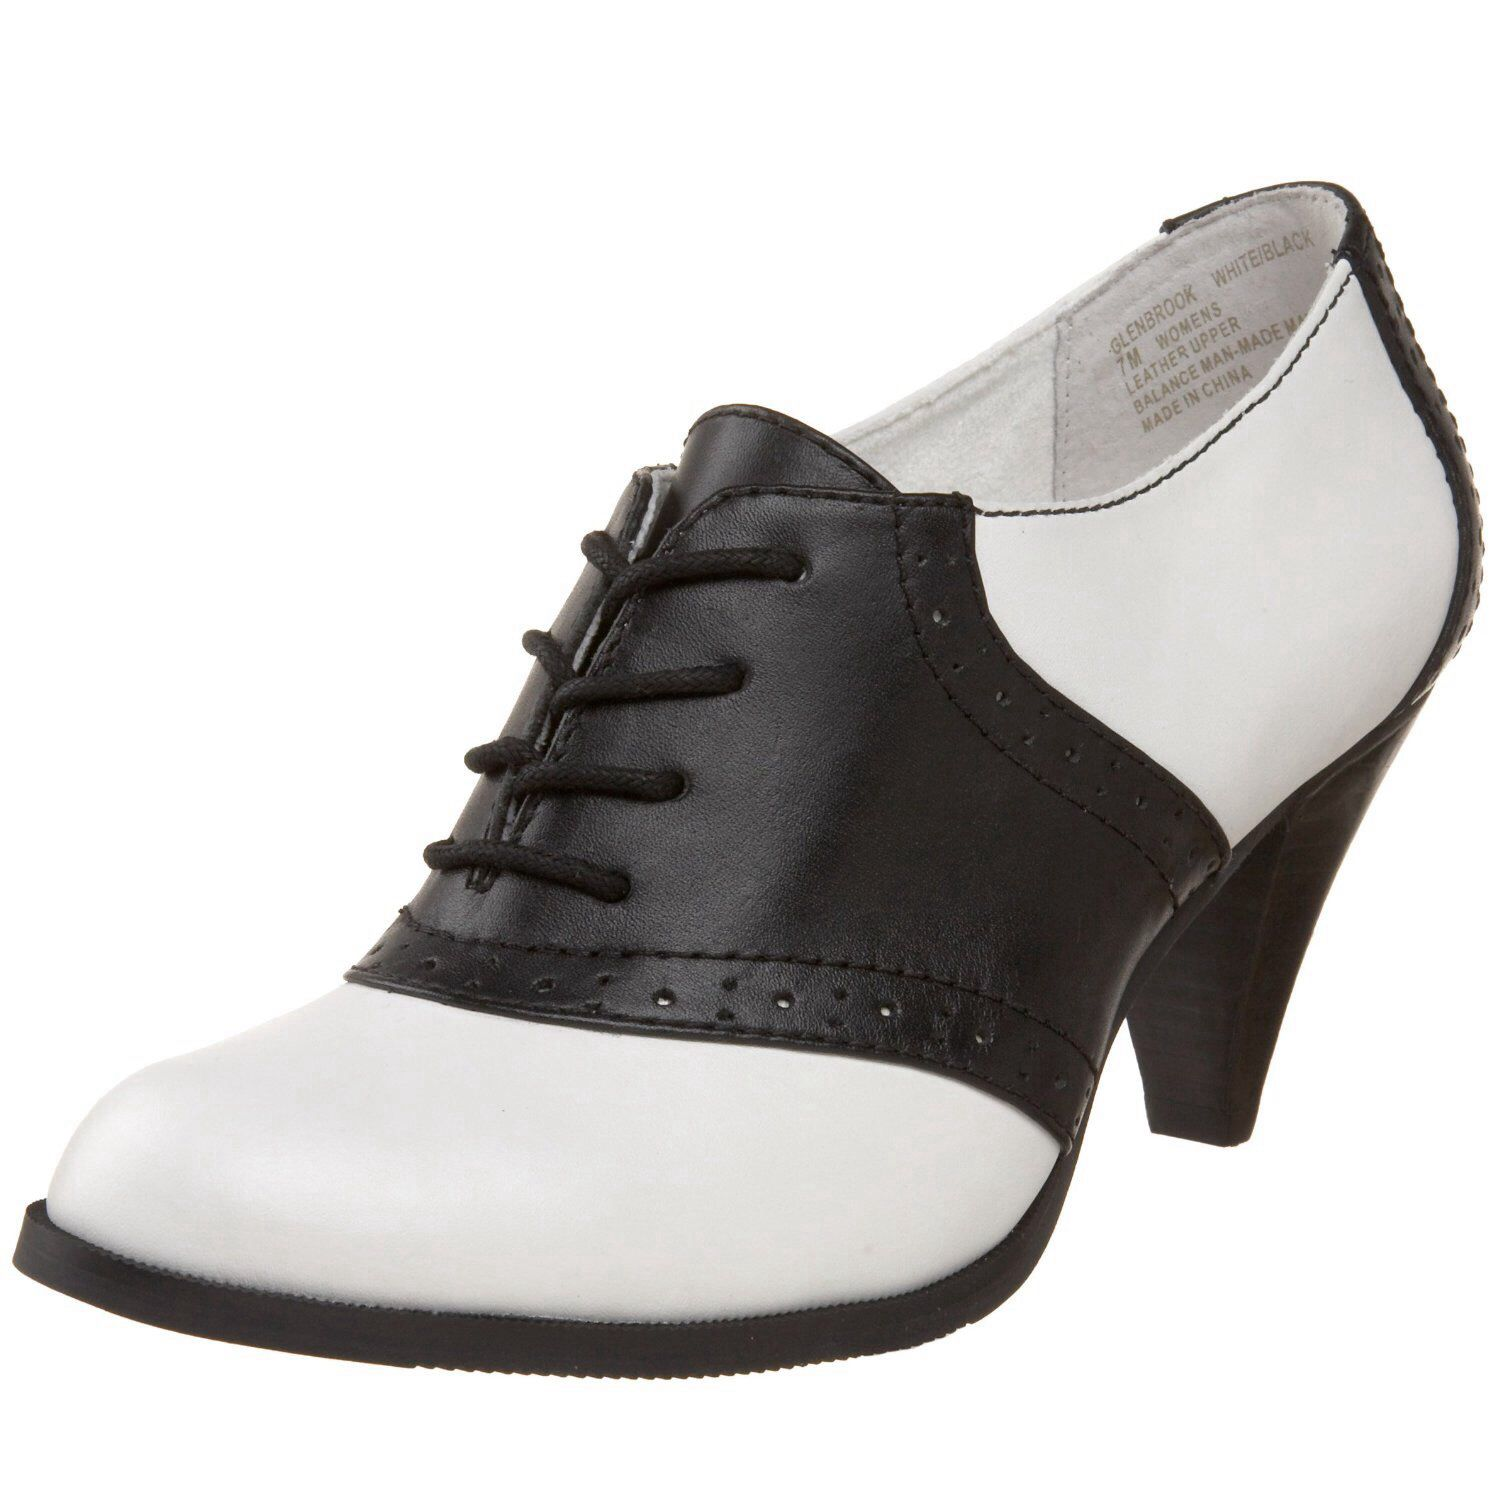 black and white heel oxfords s best friend